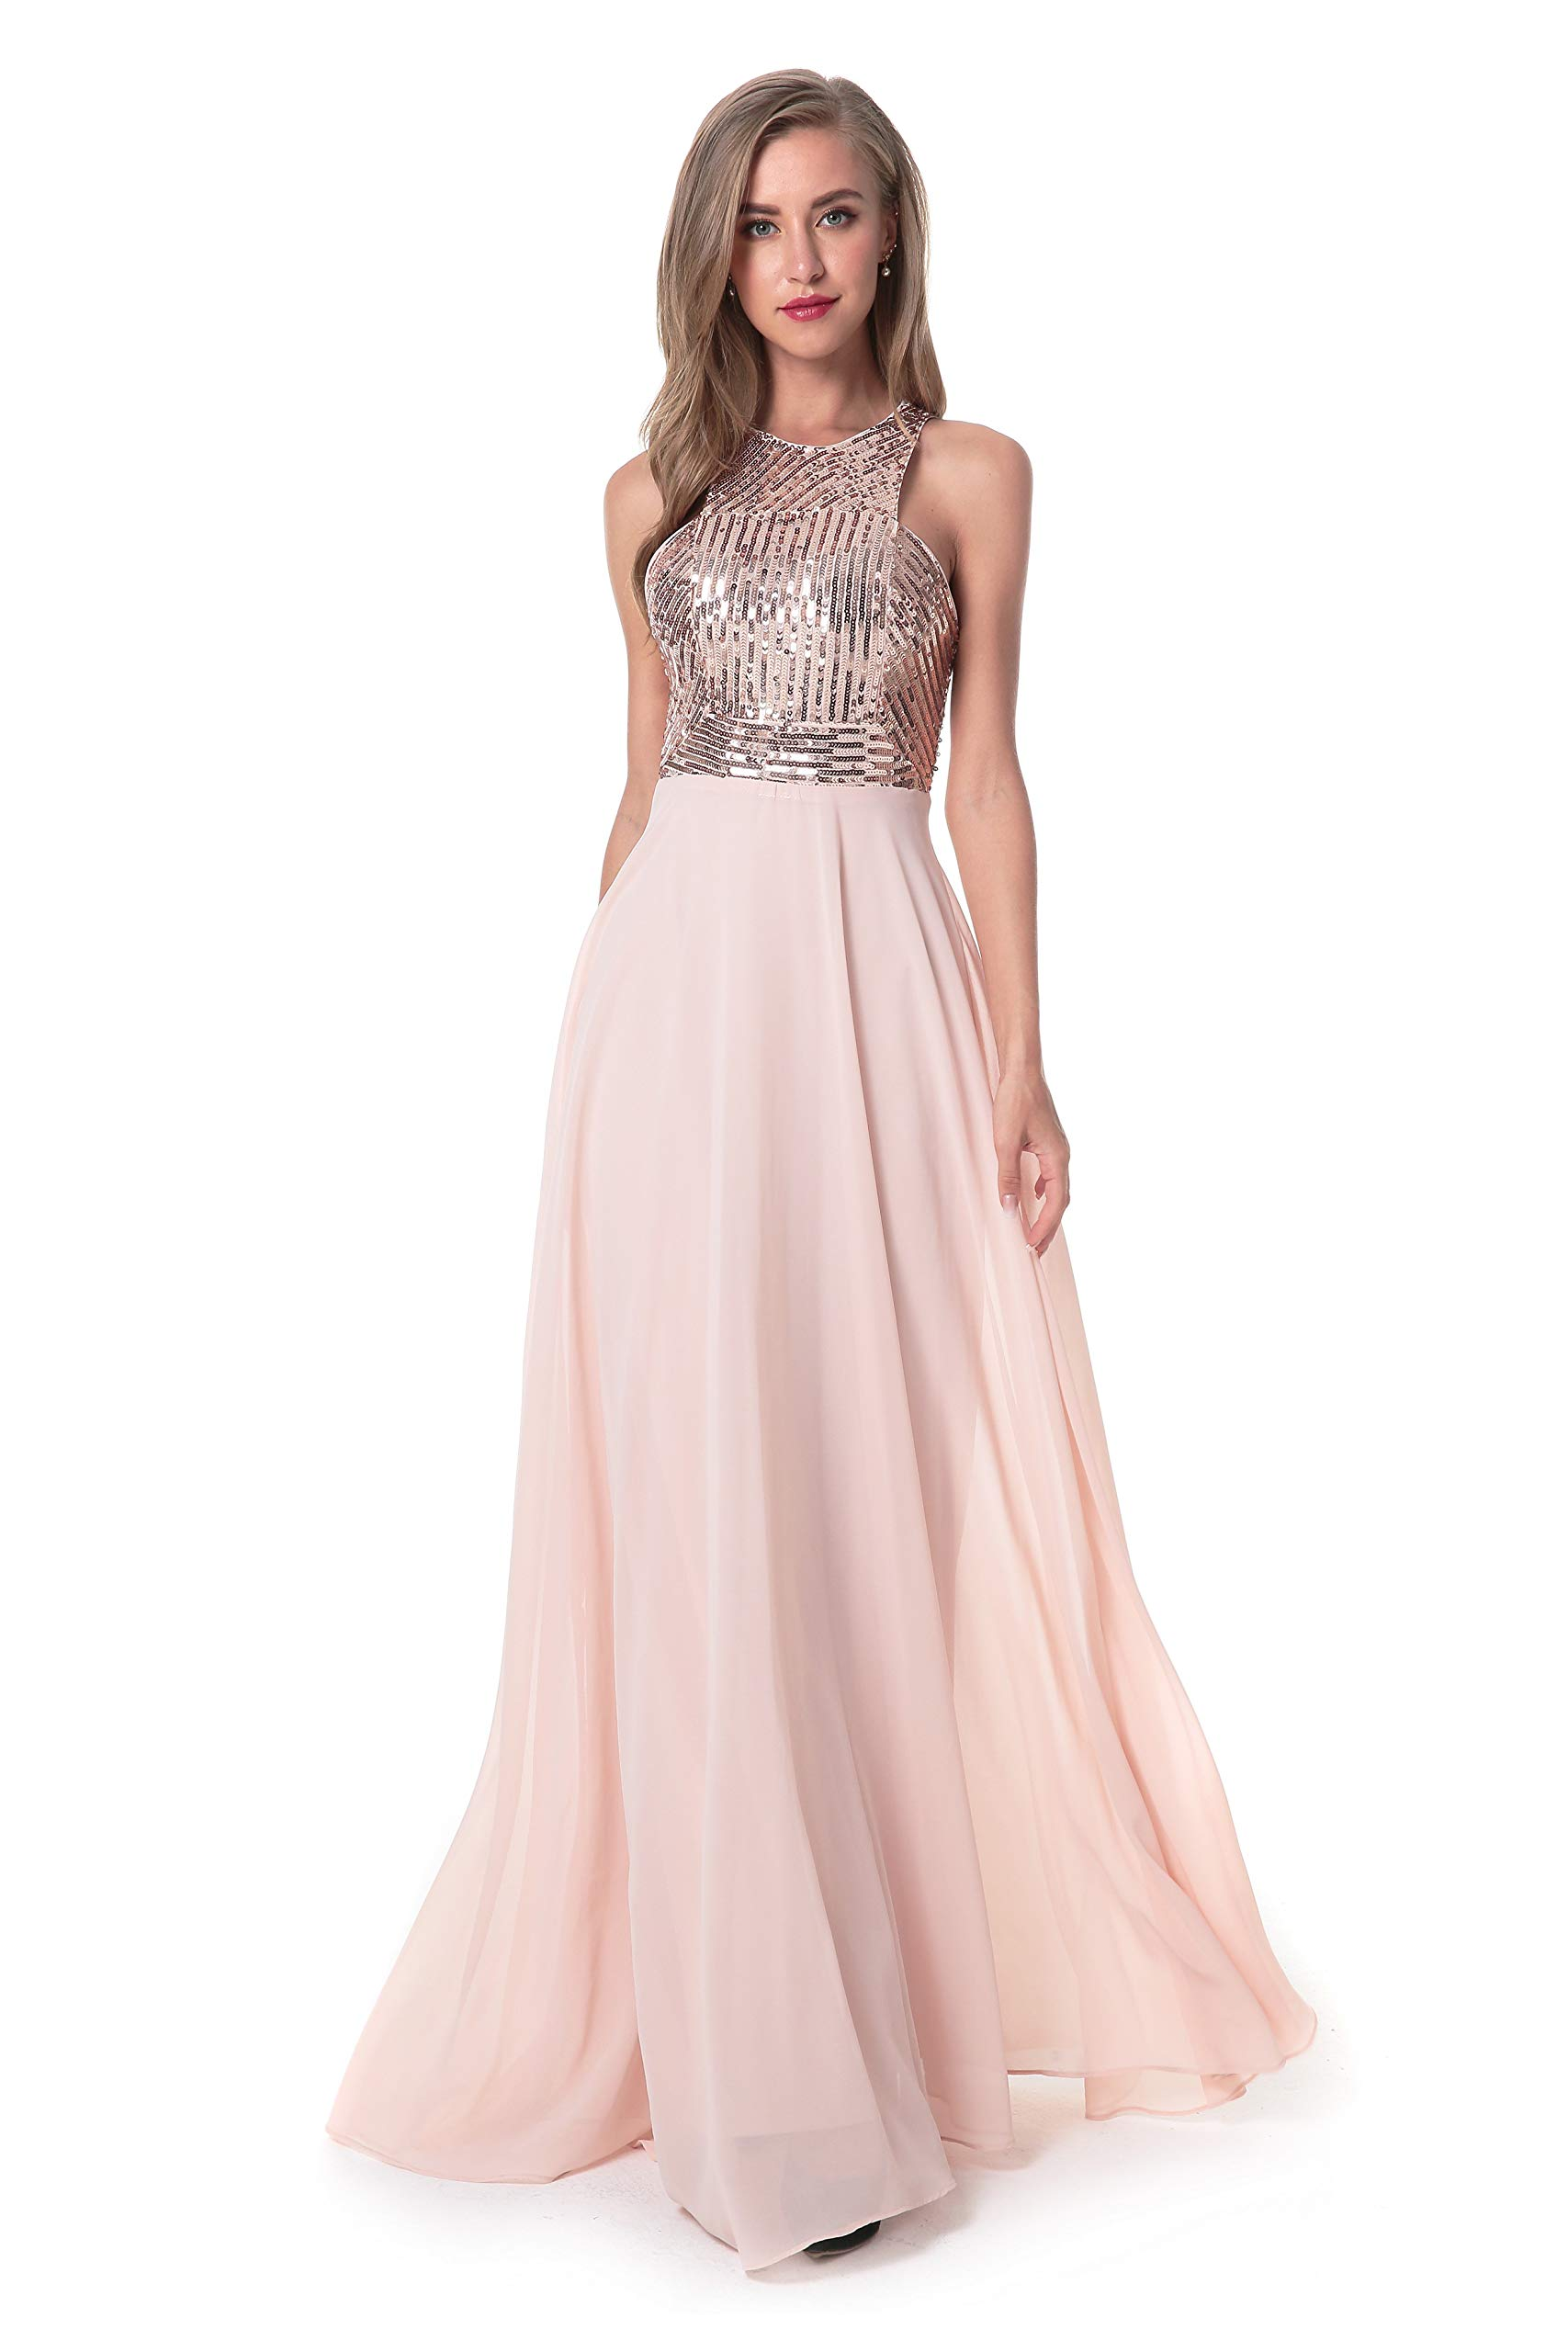 Women/'s Halter Bridesmaid Dress Lace Bodice Ruched Chiffon Evening Prom Gown